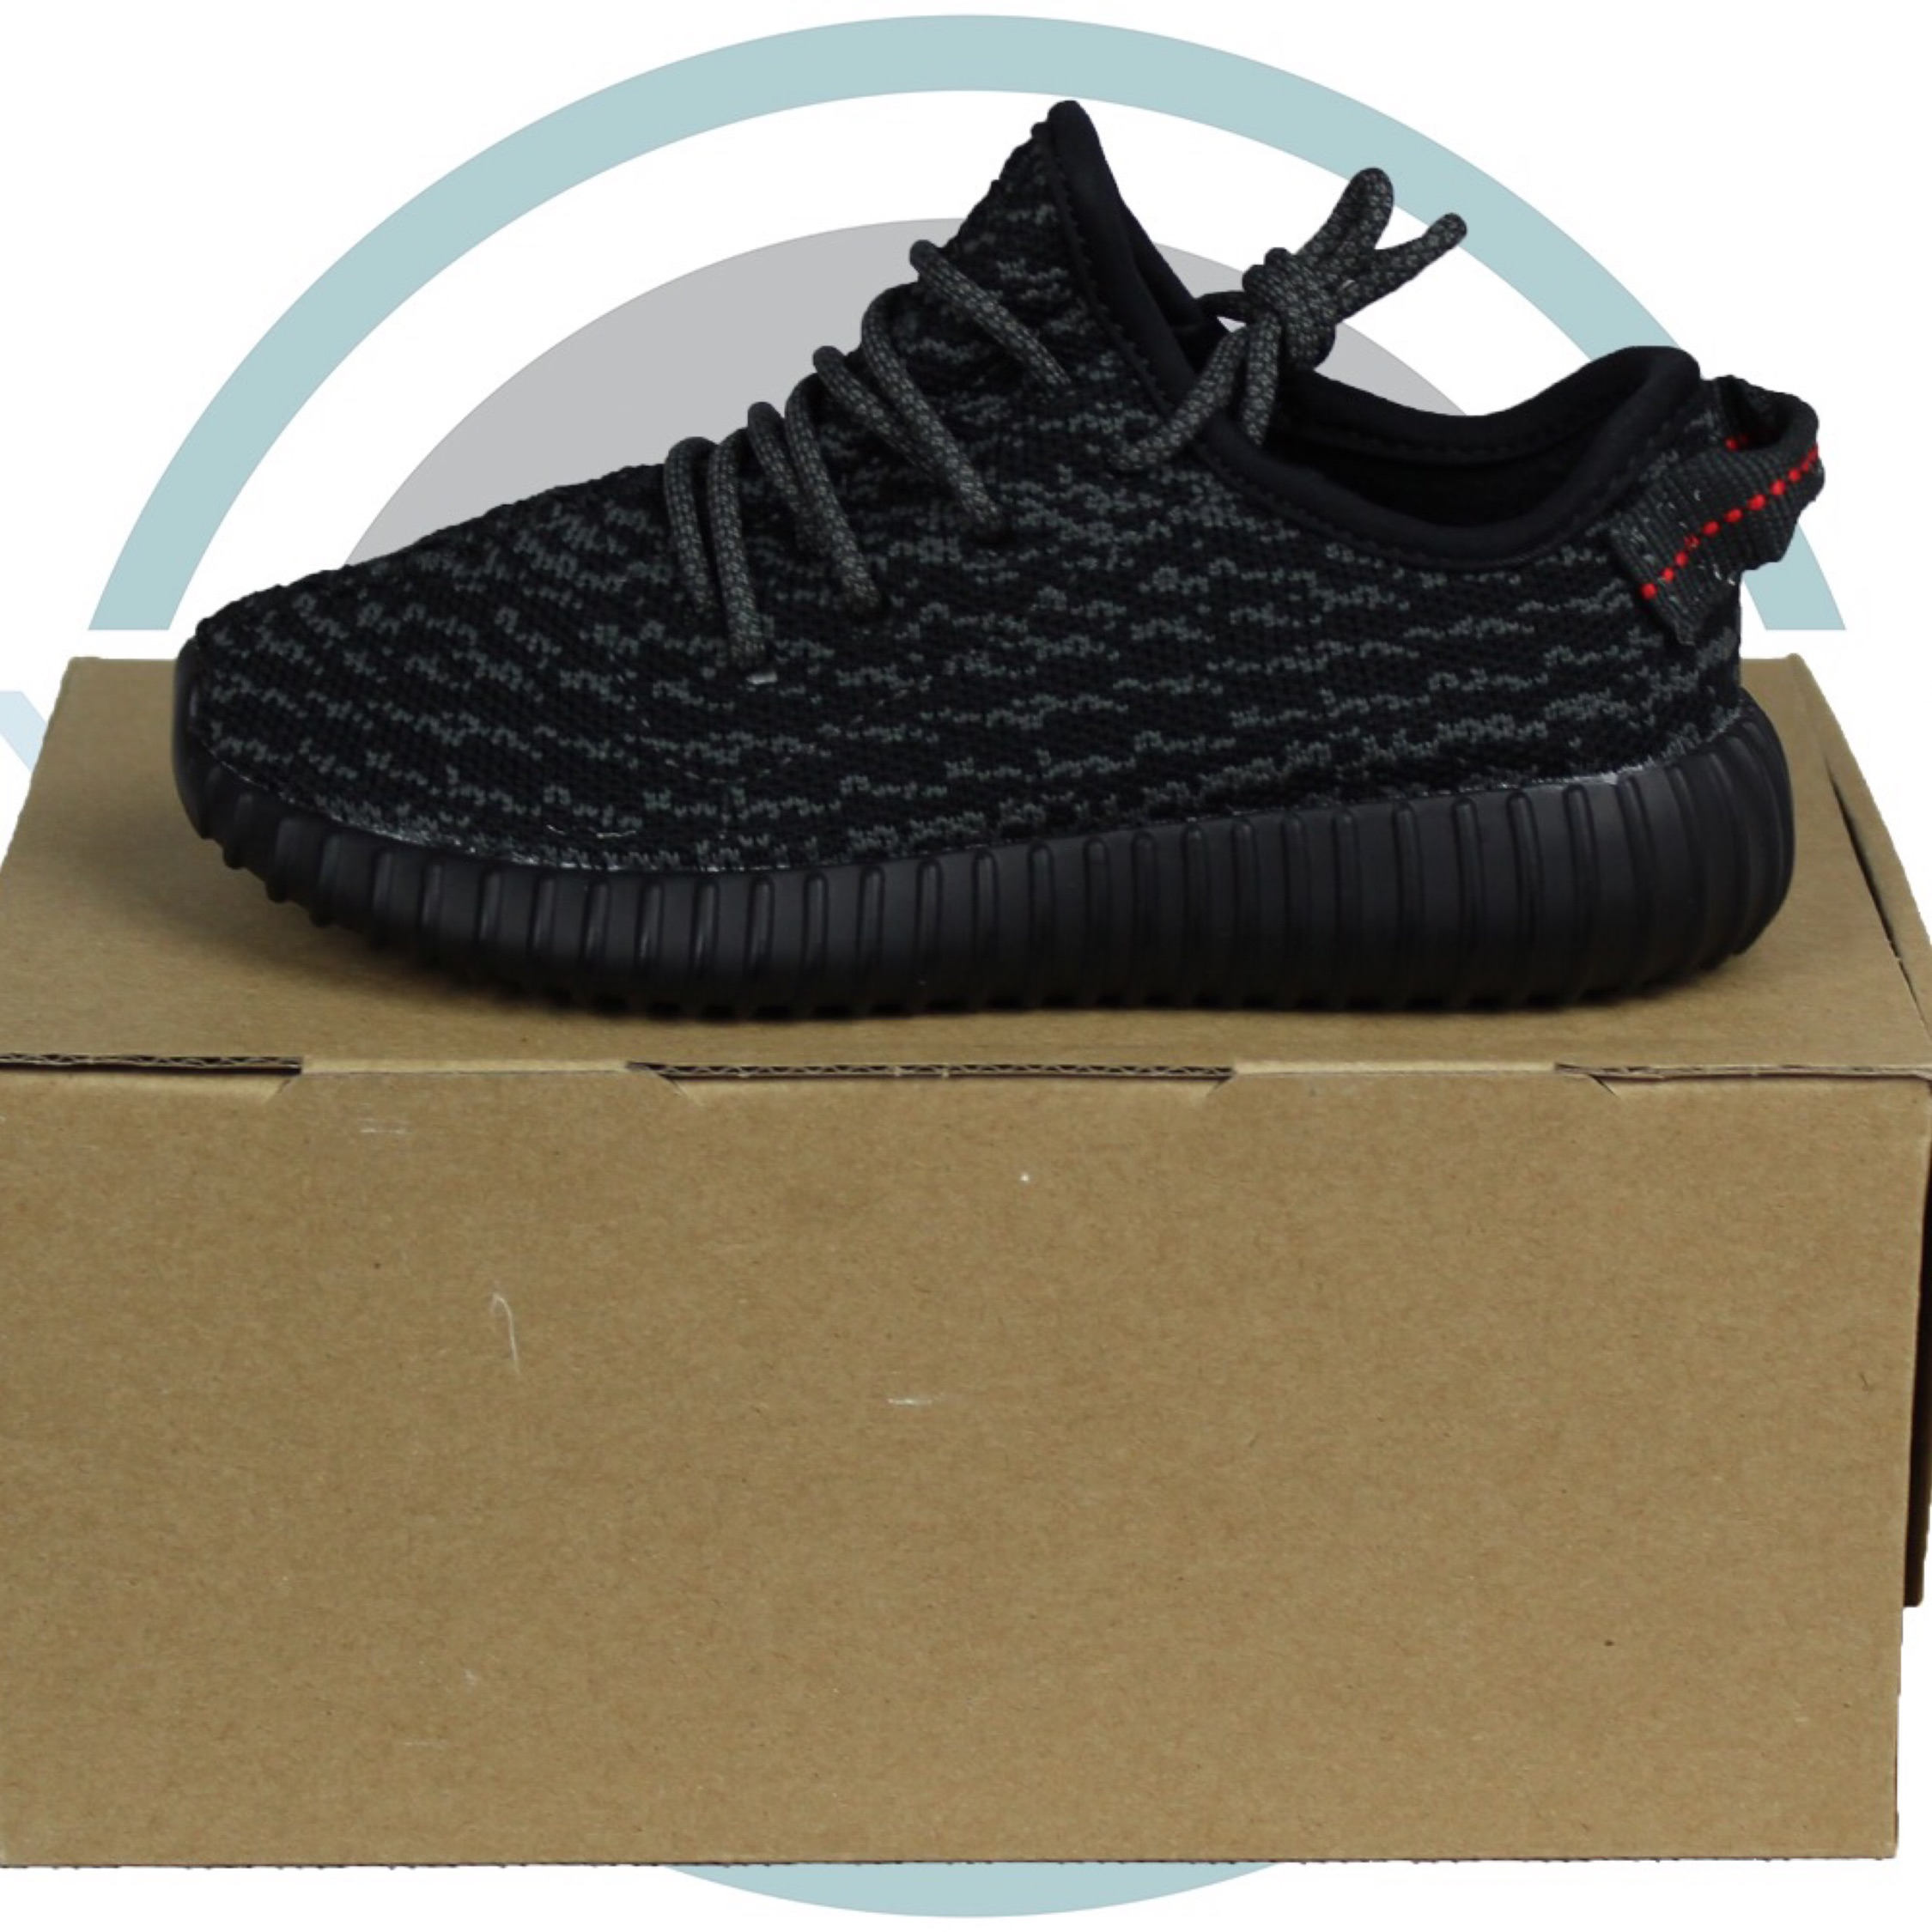 2b386feeb4d2a Adidas Yeezy Boost 350 Pirate Black Infant